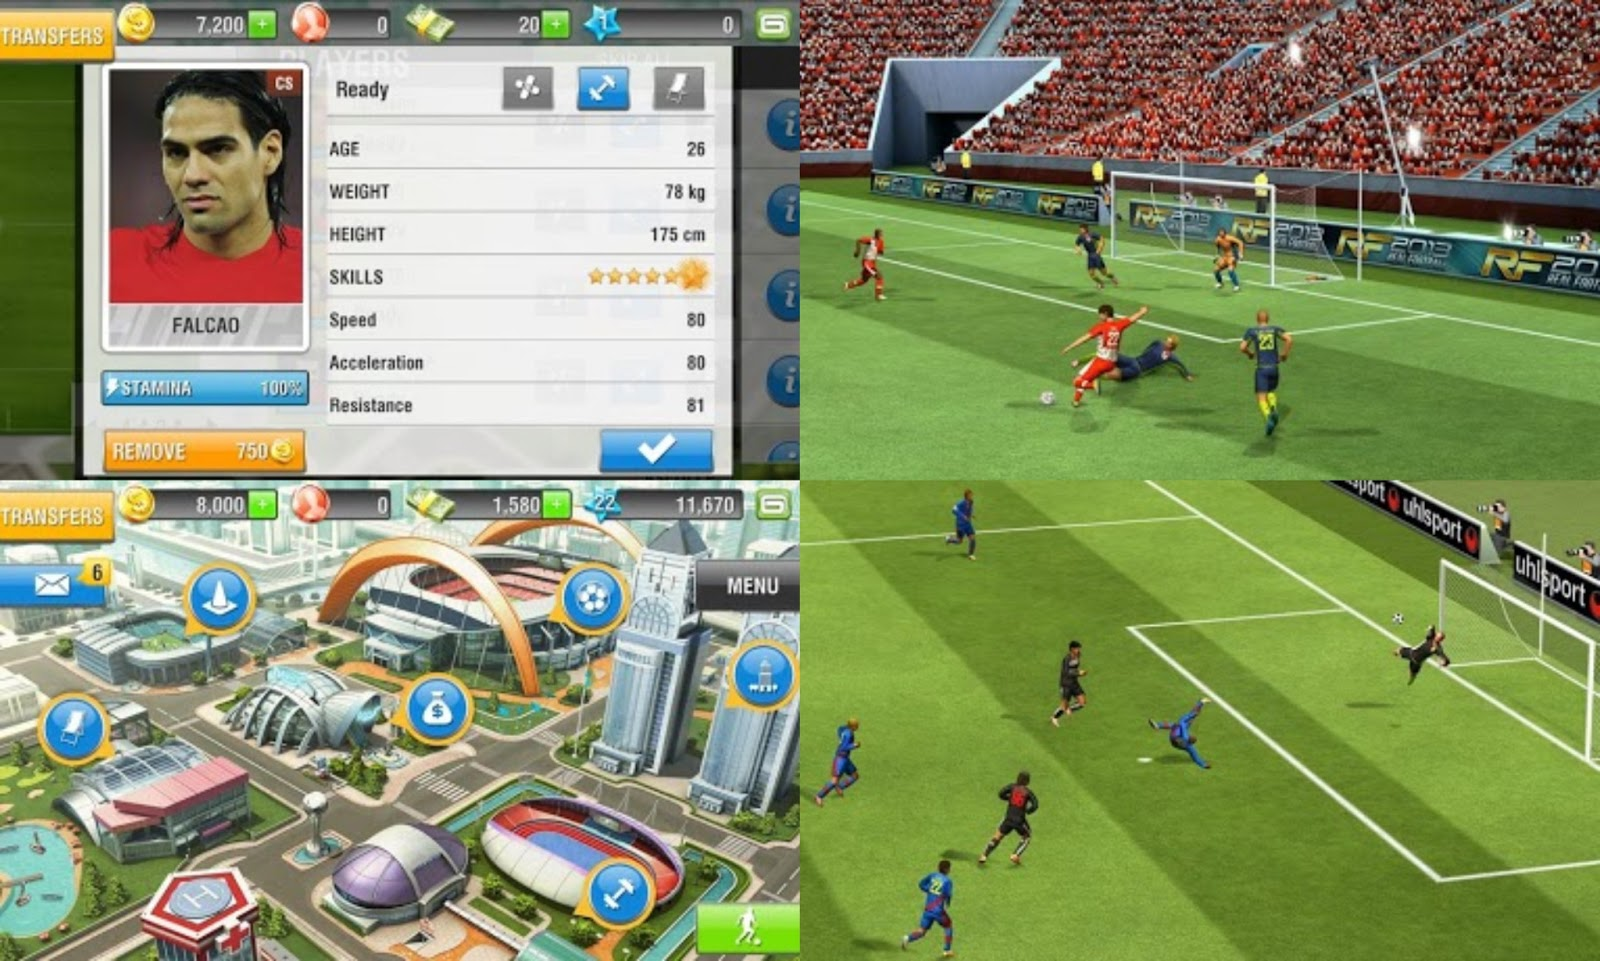 RF (Real Football) 2013 v1.0.3 Apk + SD Data - Android ...